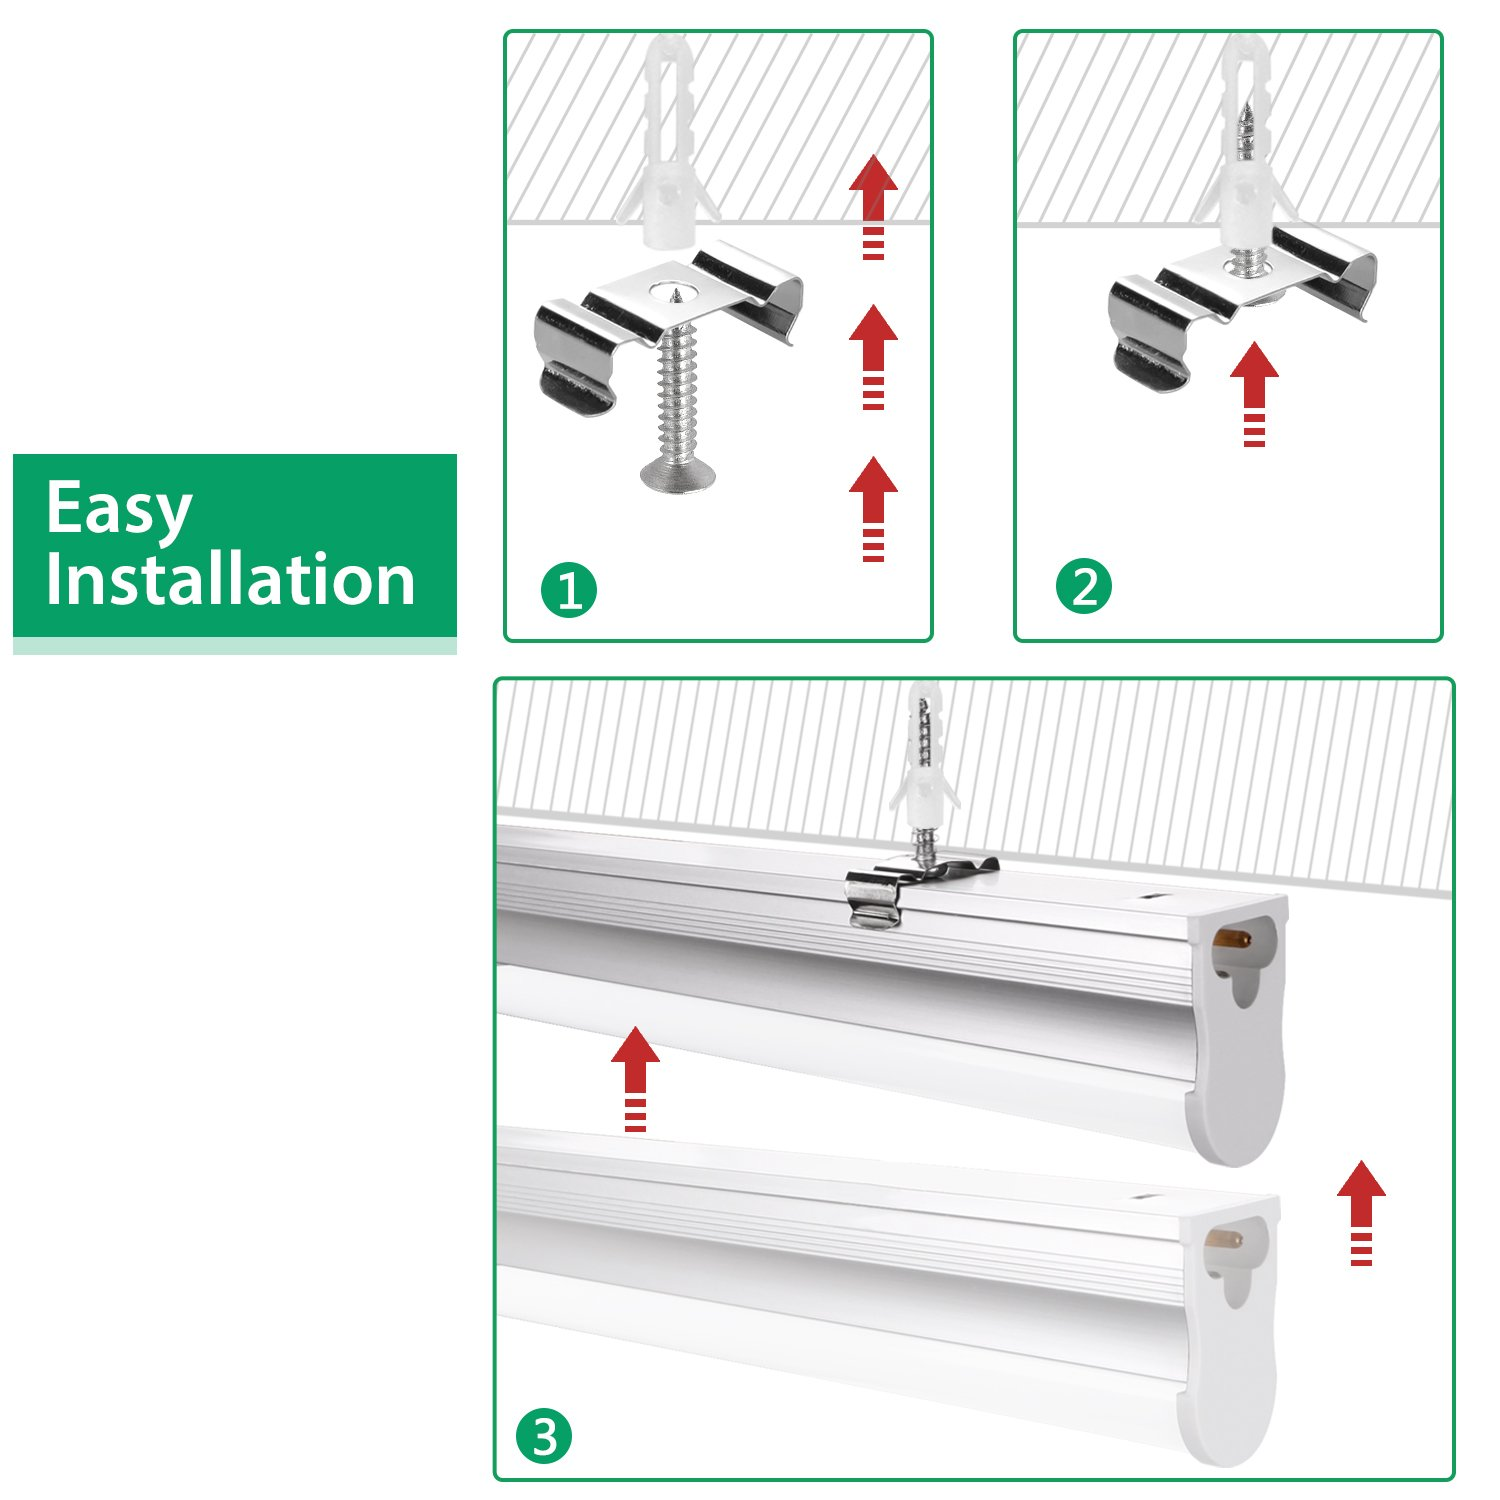 FrenchMay LED T5 mini utility linkable shop light 4ft, 22W, 85CRI, 2200Lumens, 5000K, 32w Fluorescent Equivalent, integrated ceiling light & under Cabinet shop light for garage, workshop, basement by FrenchMay (Image #3)